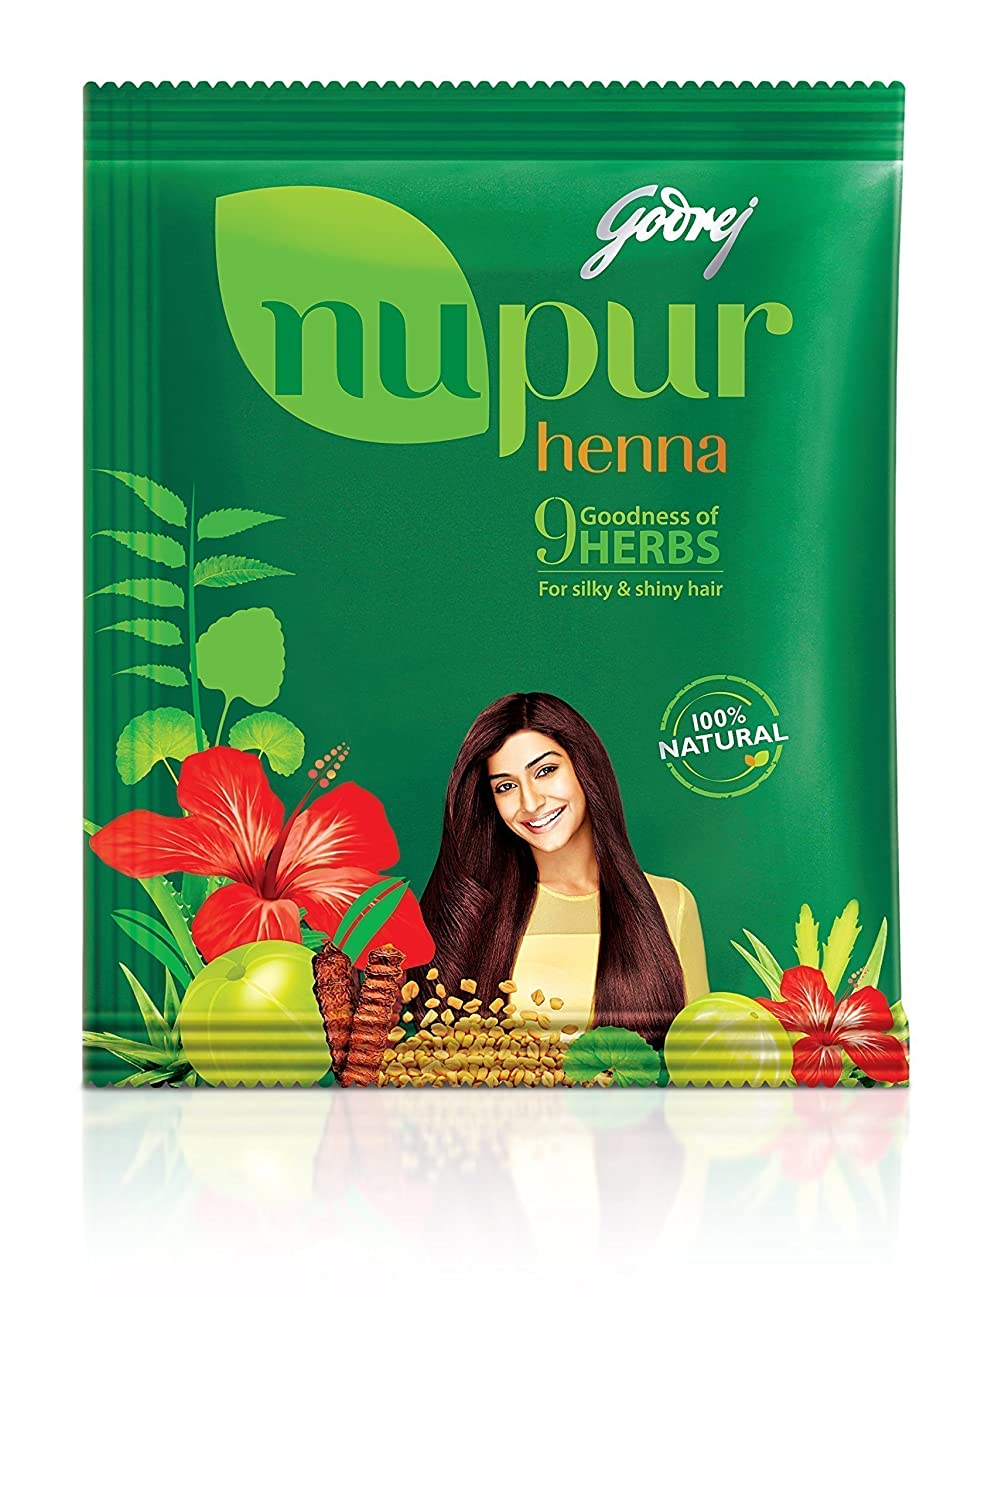 Godrej Nupur Henna Natural Mehndi for Hair Color with Goodness of 9 Herbs, 14.10 Ounce Nupure 2